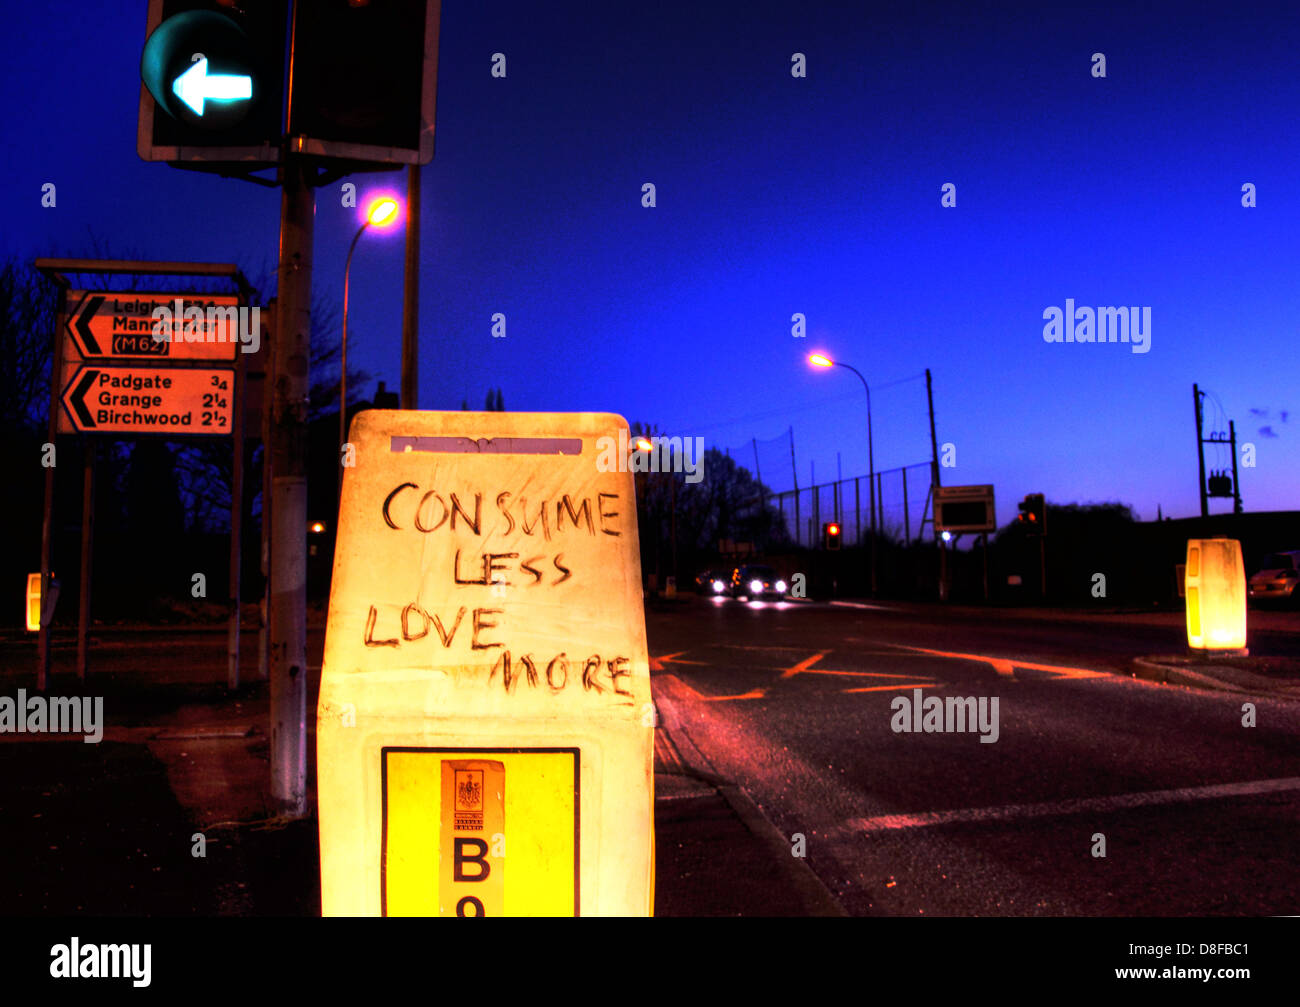 Consume less love more - good advice - Stock Image